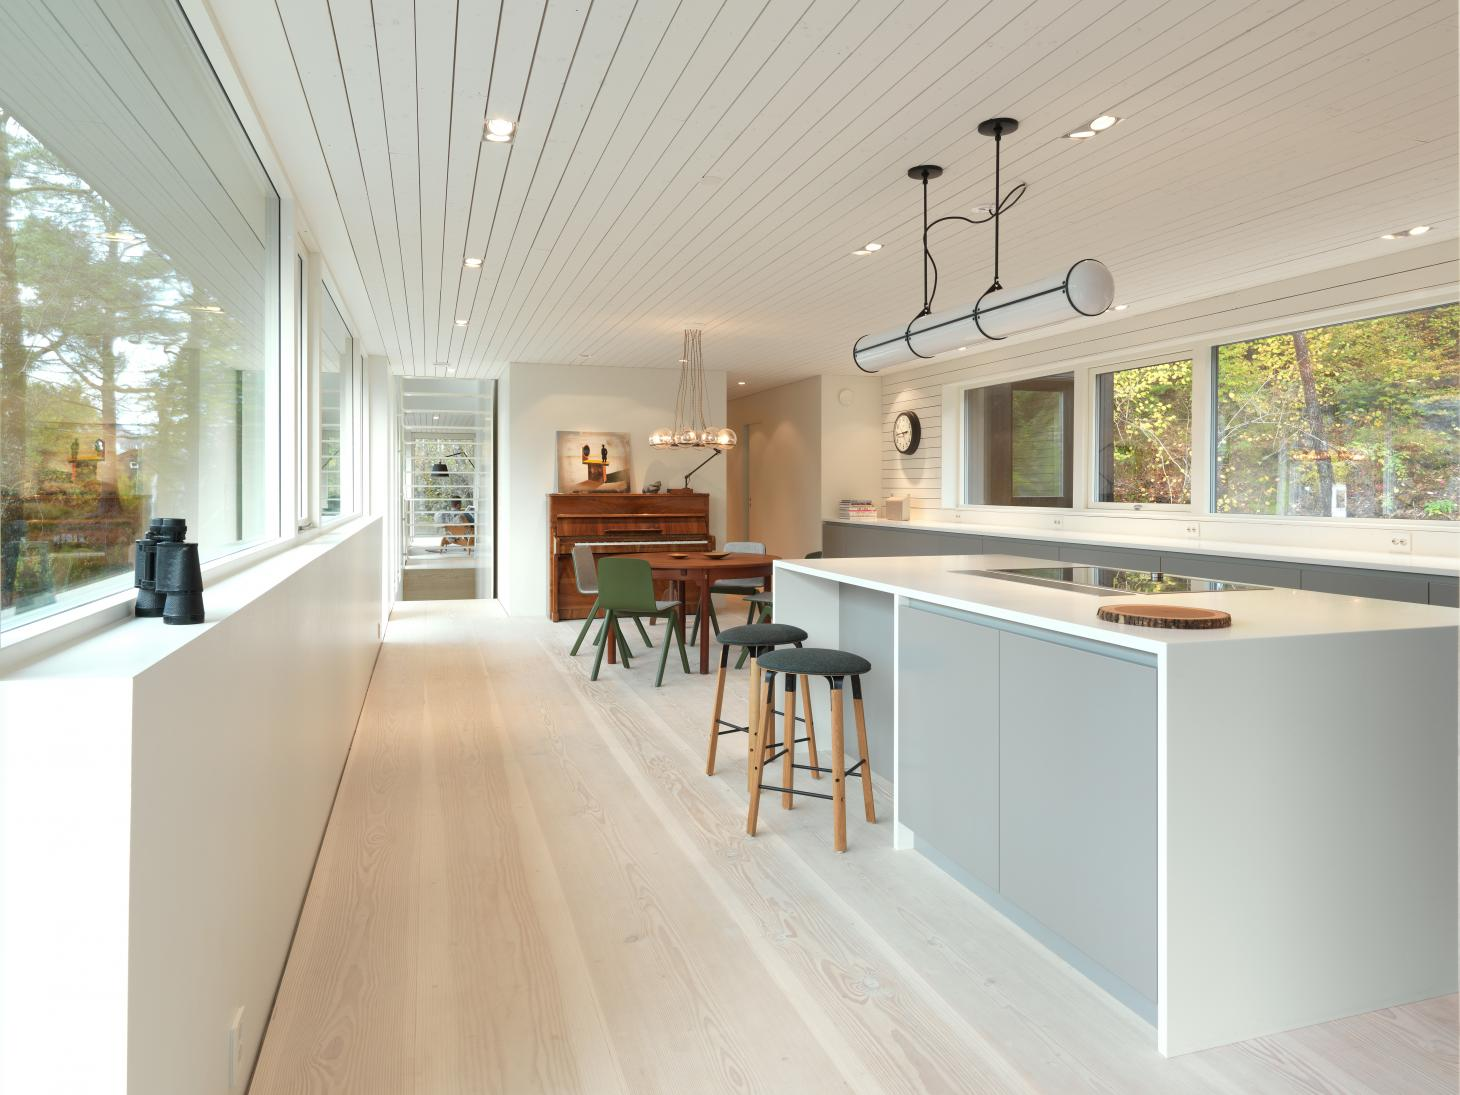 Todd Saunders' kitchen at his self-designed home in Bergen